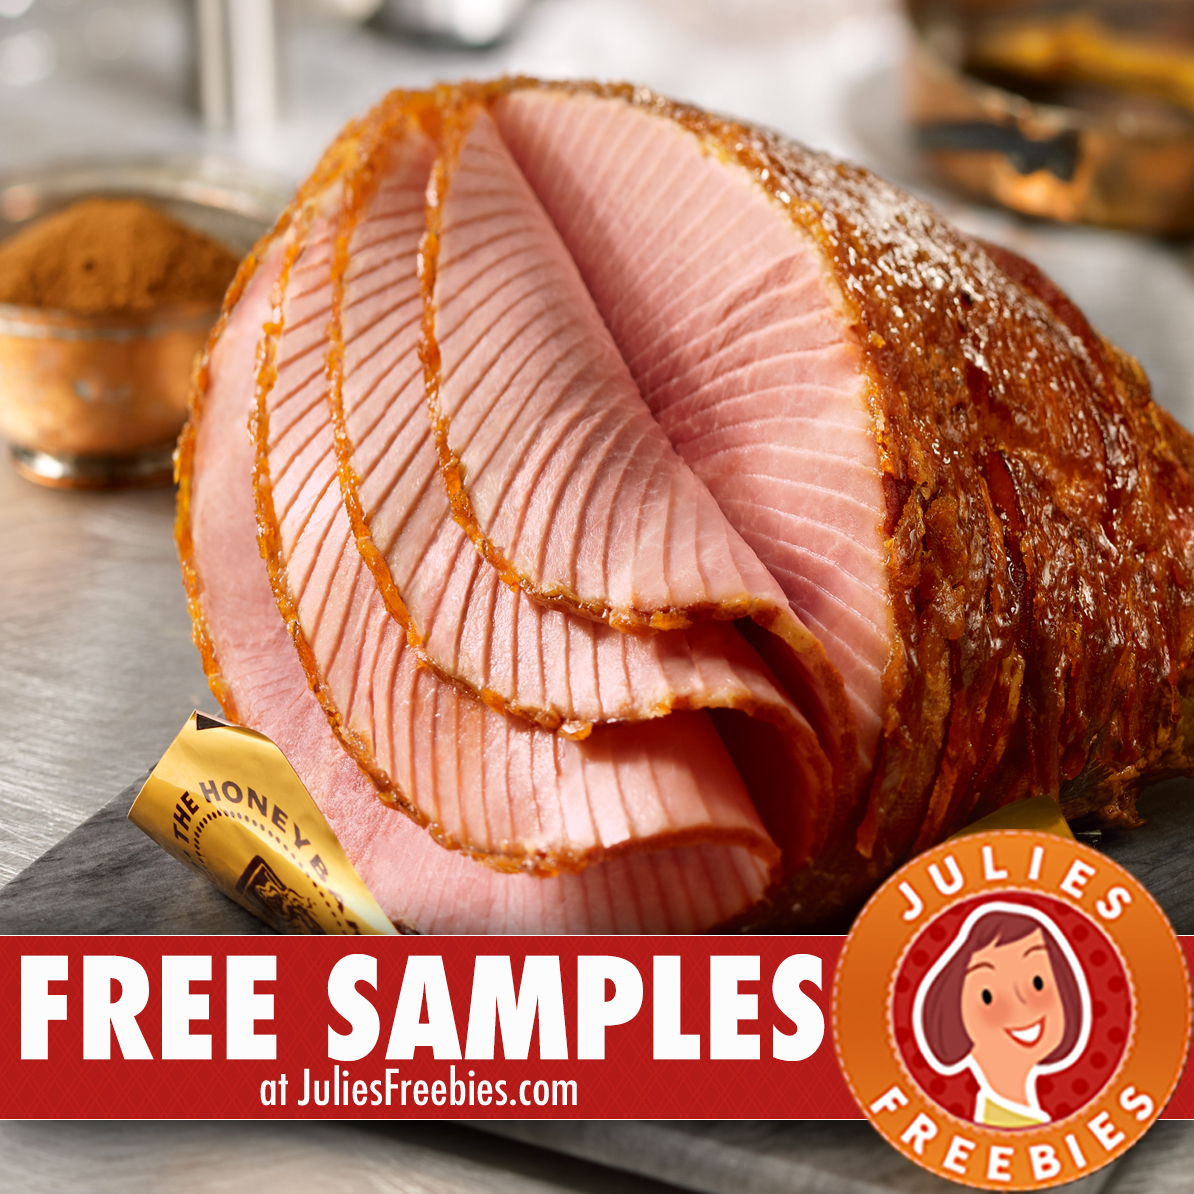 Amusing Here Is An Offer Where You Can Score Free Samples At Honey Baked Ham Every From Through October Free Honeybaked Ham Samples Freebies Honeybaked Ham Locations Illinois Honeybaked Ham Locations nice food Honeybaked Ham Locations